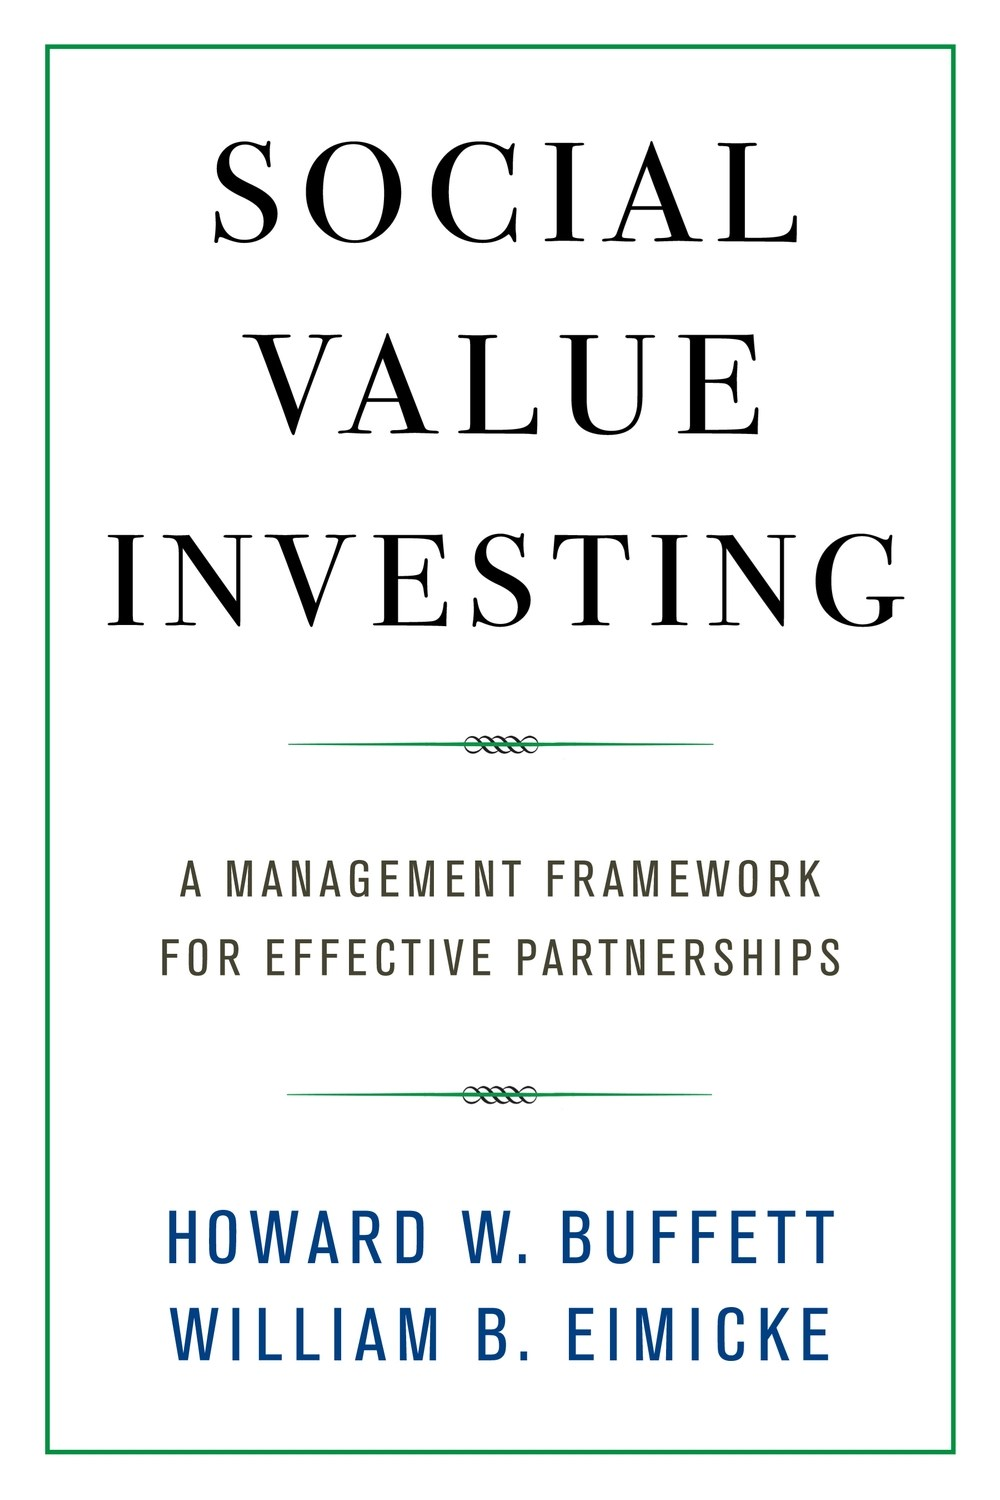 Cover art for Social Value Investing